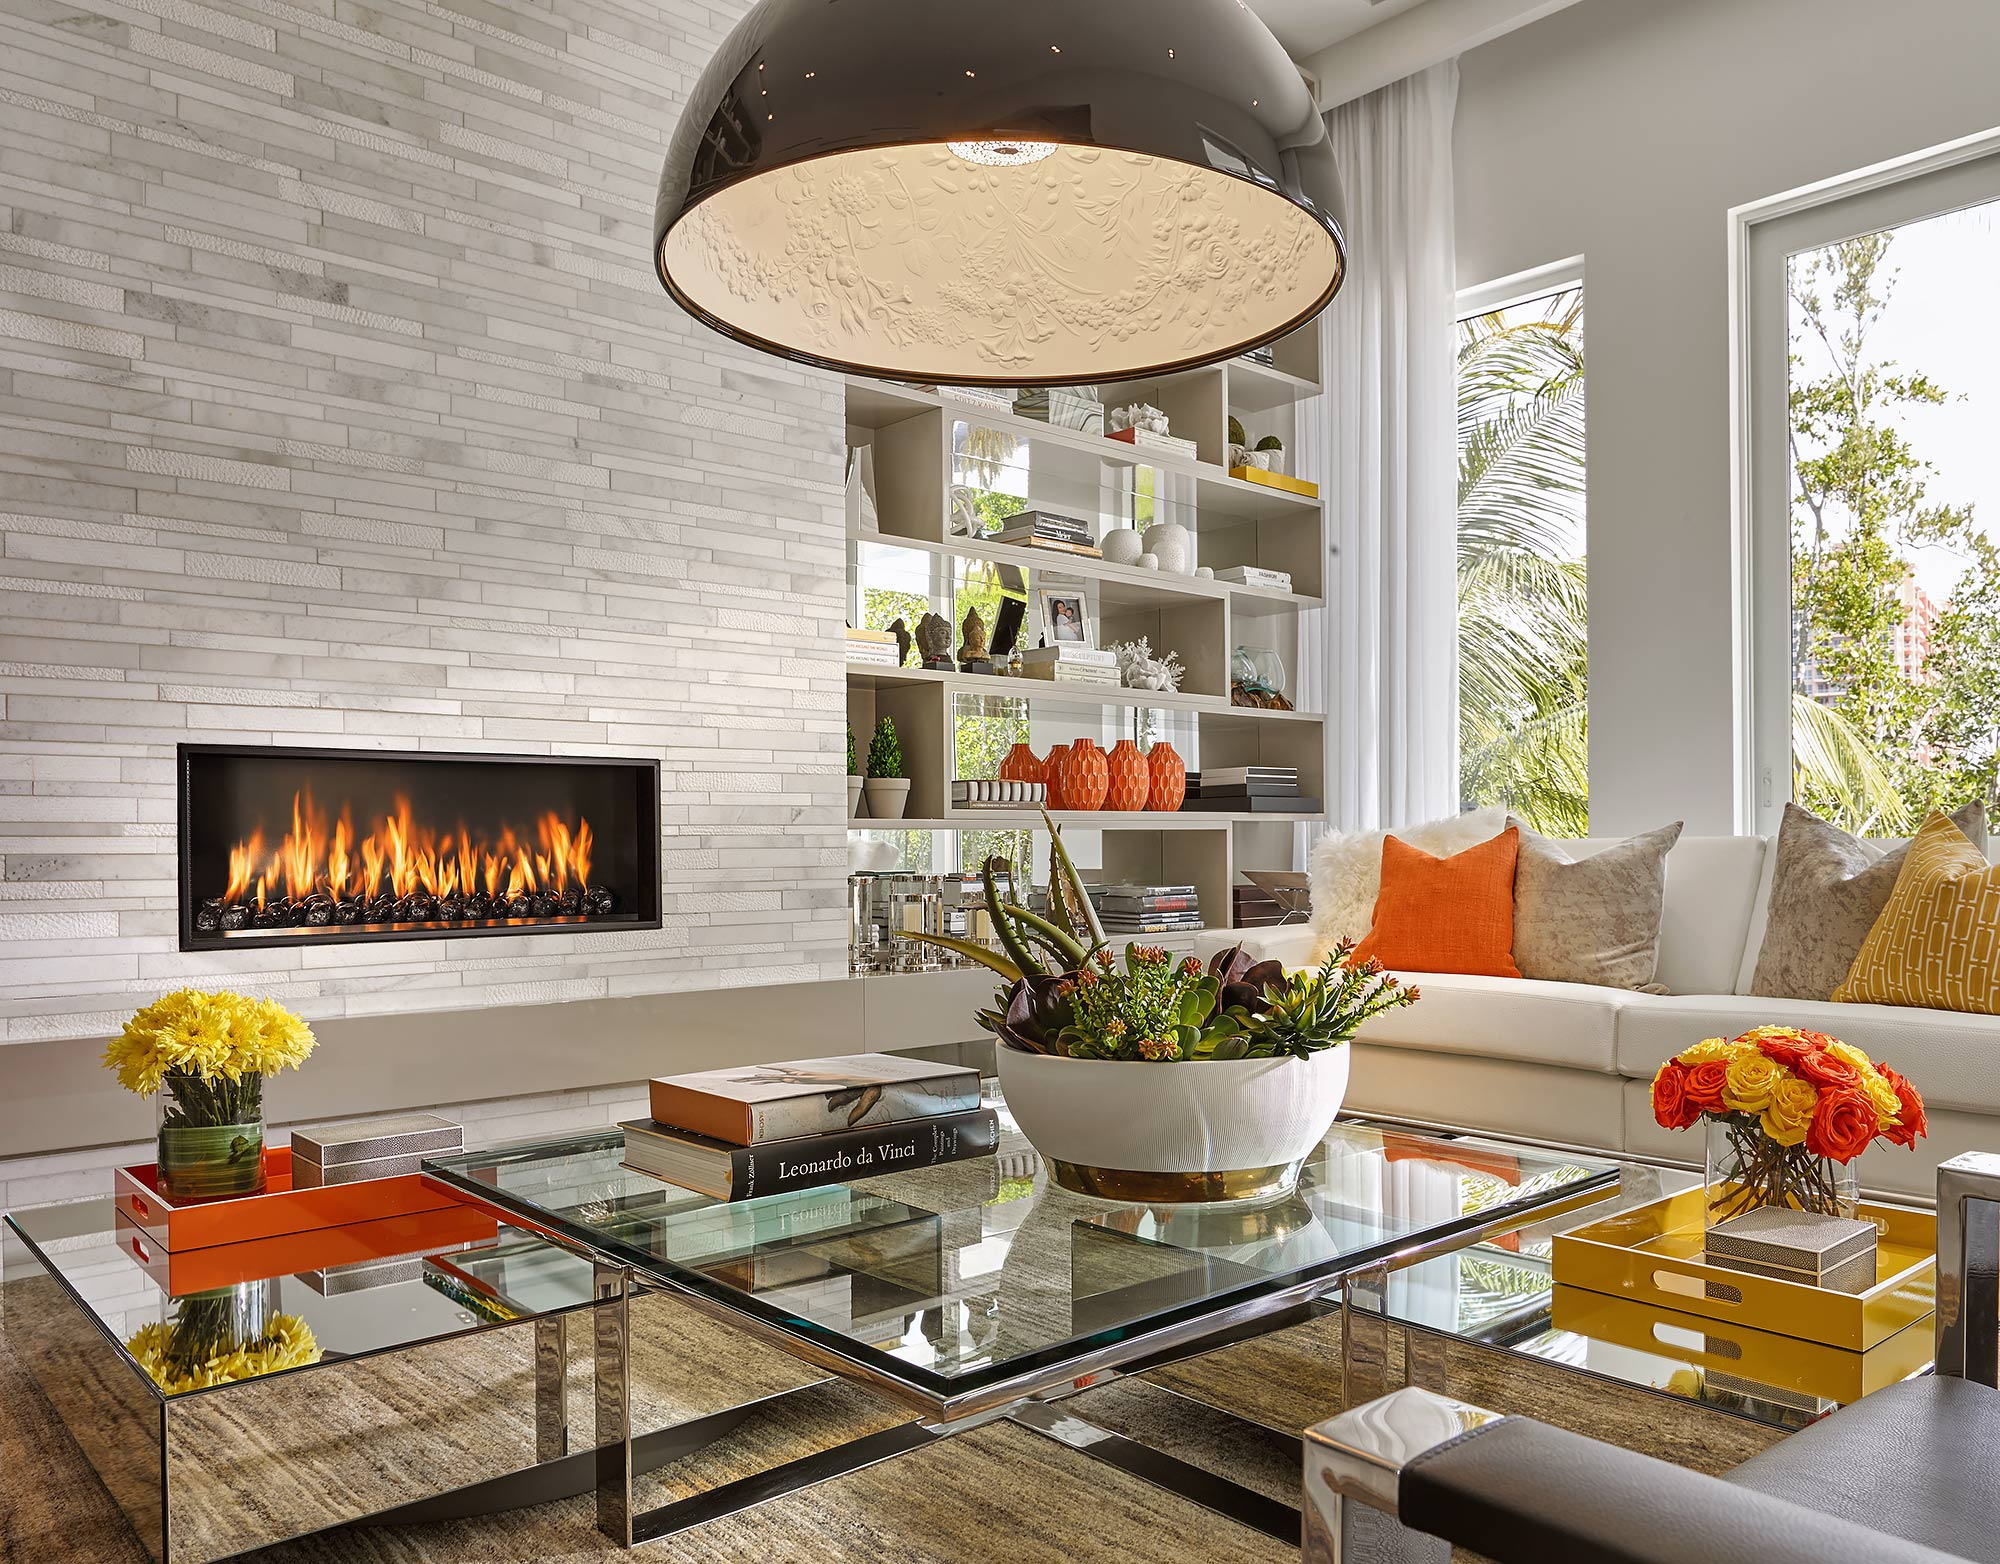 Contemporary-Living-Room-Fireplace-Miami-Beach-Interior-Photographer